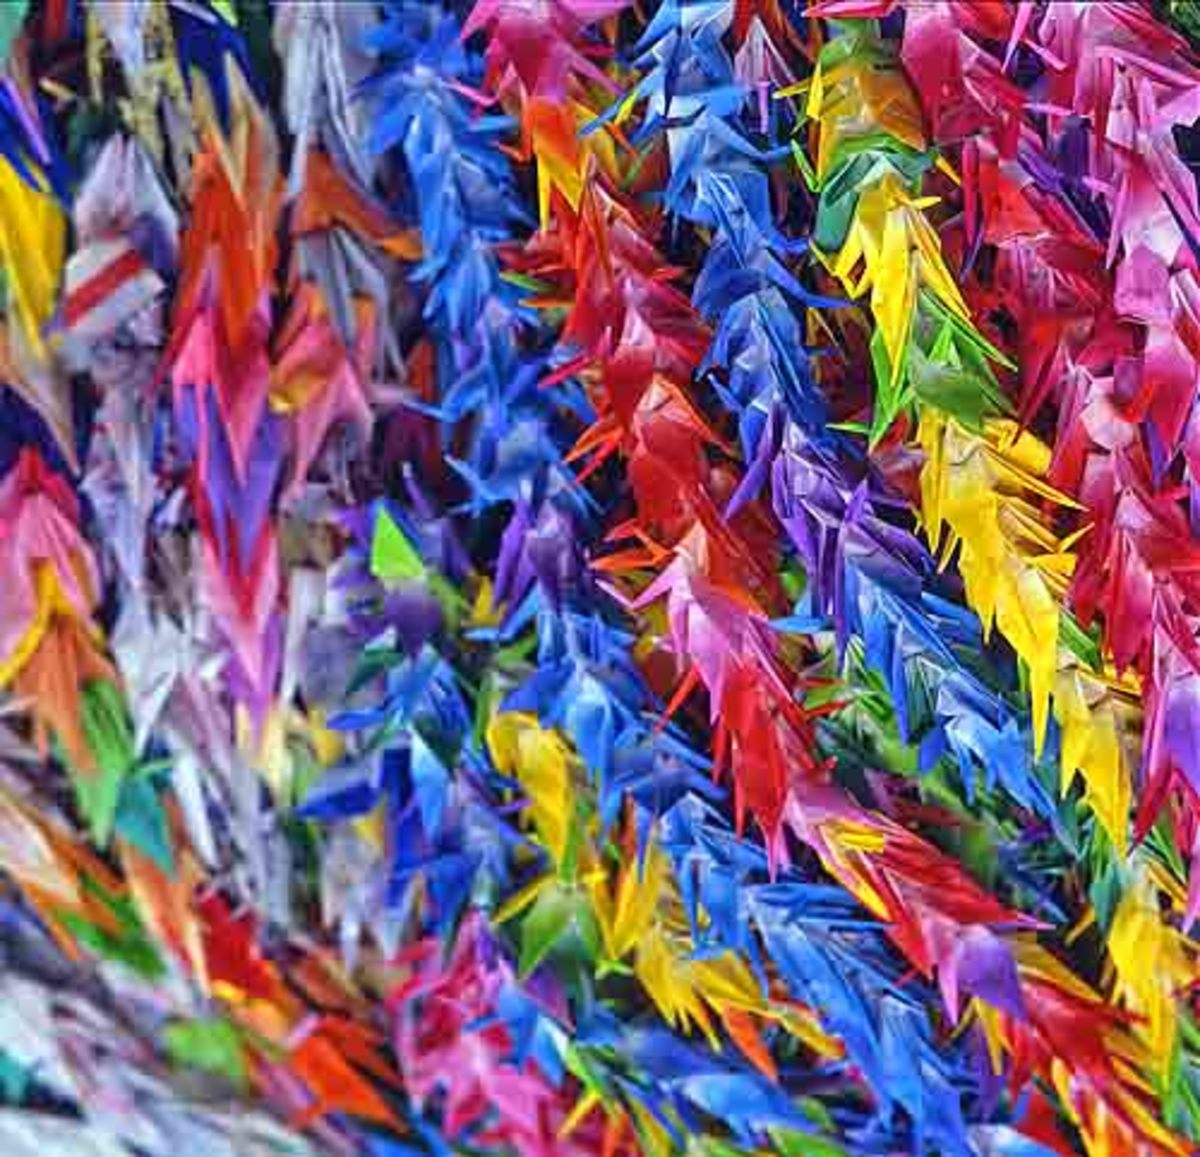 Strings of paper cranes for prayers of peace sent to Peace Memorial Park in Hiroshima. (public domain)